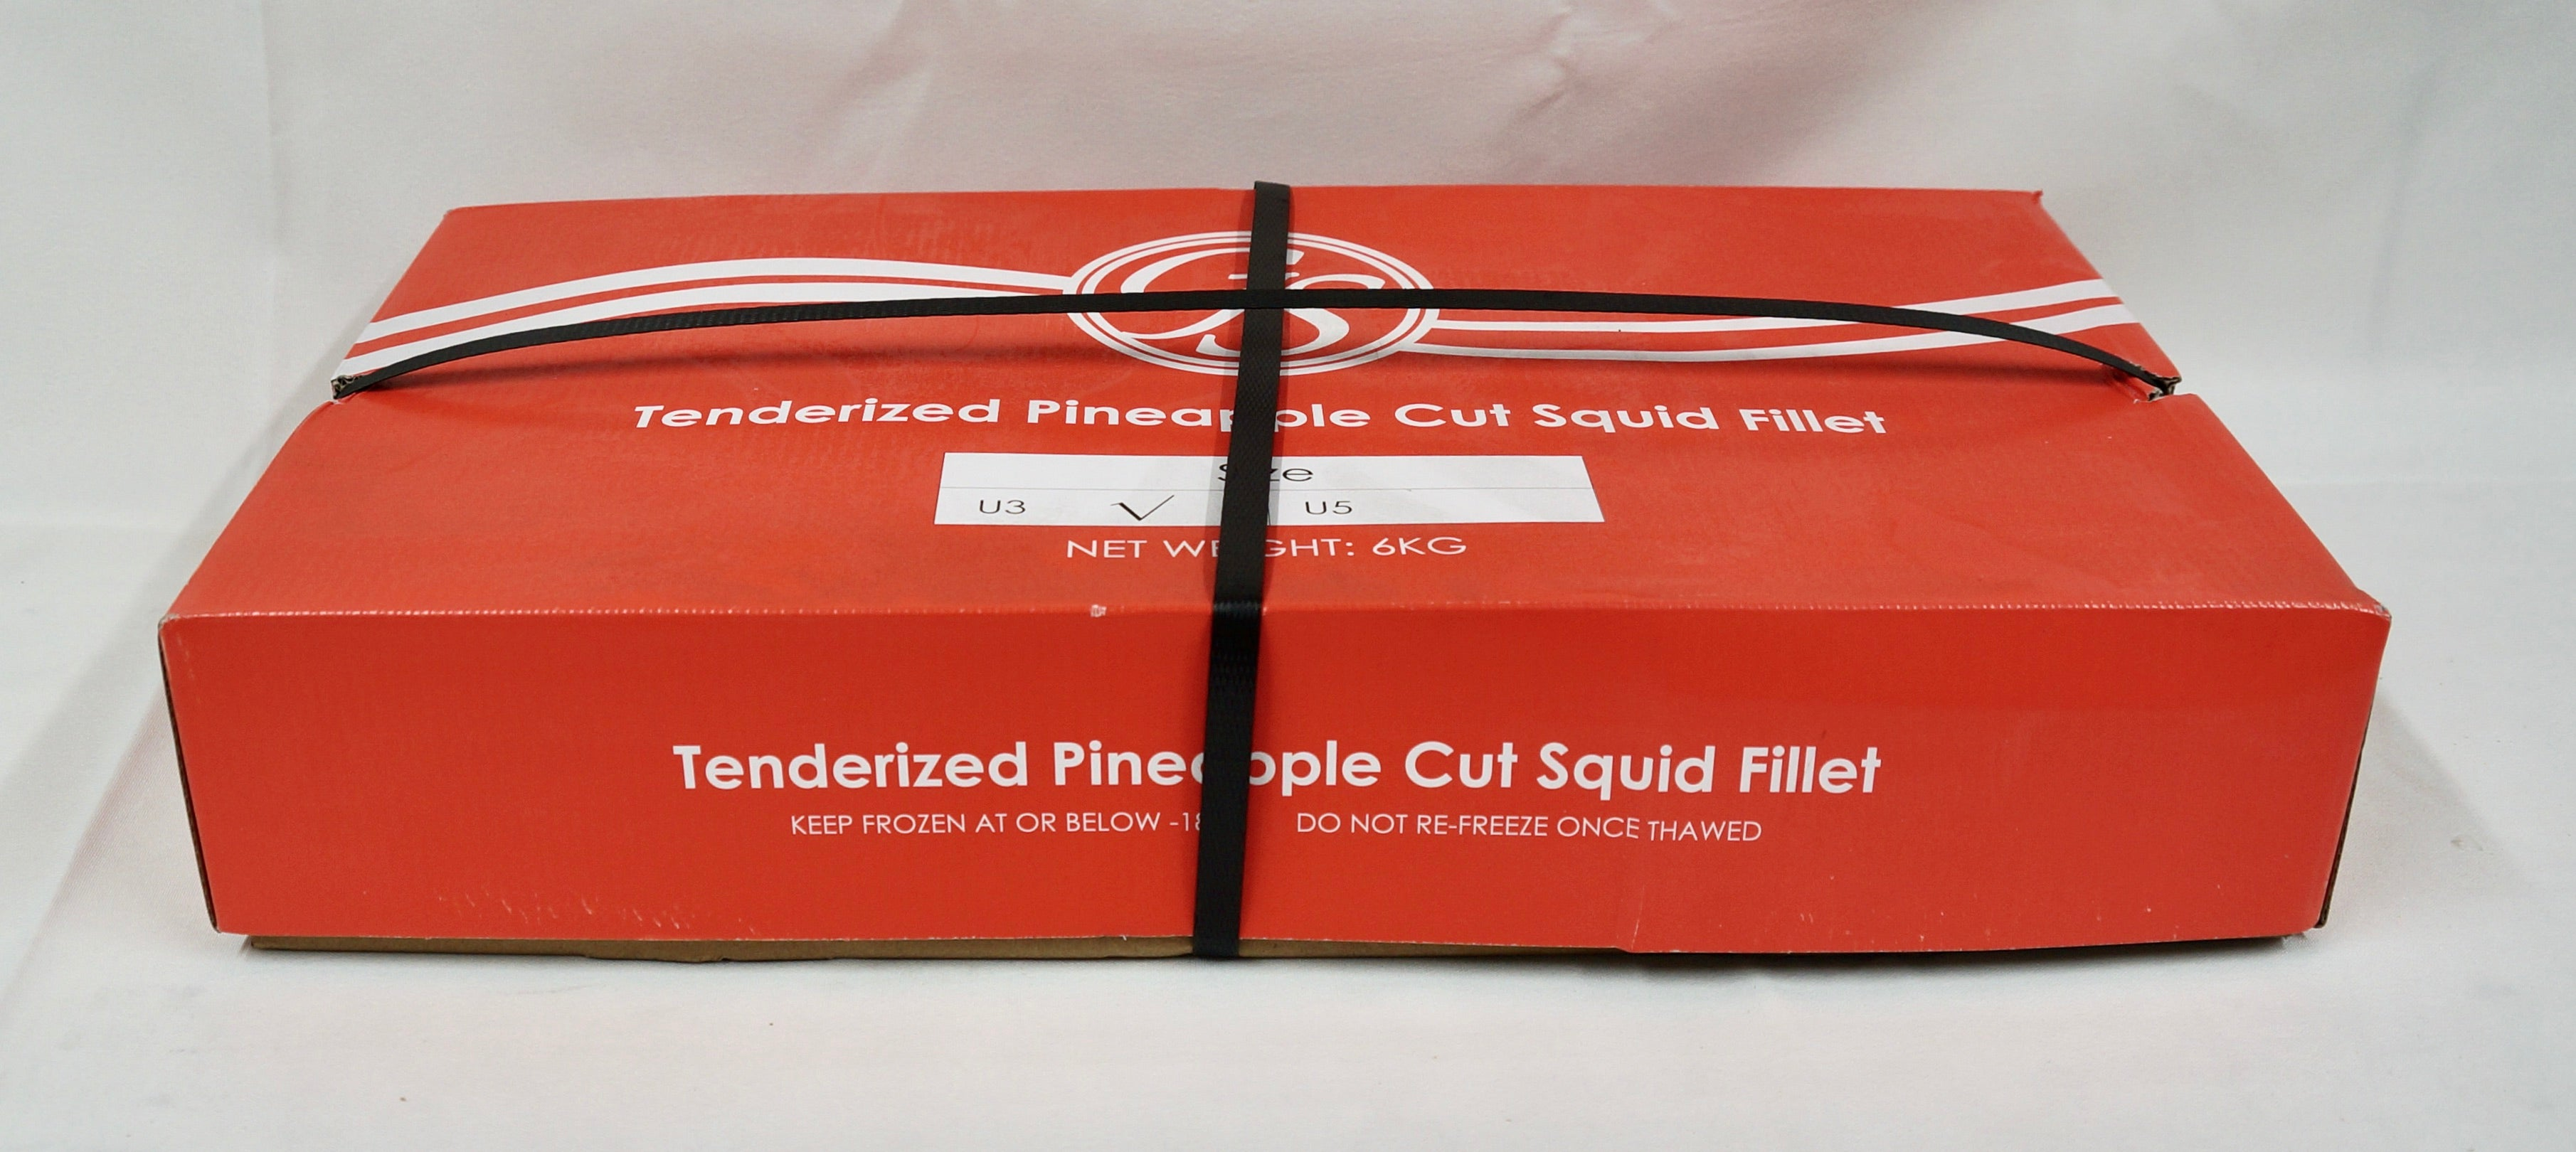 Pineapple Cut Squid Fillets 6kg Ctn